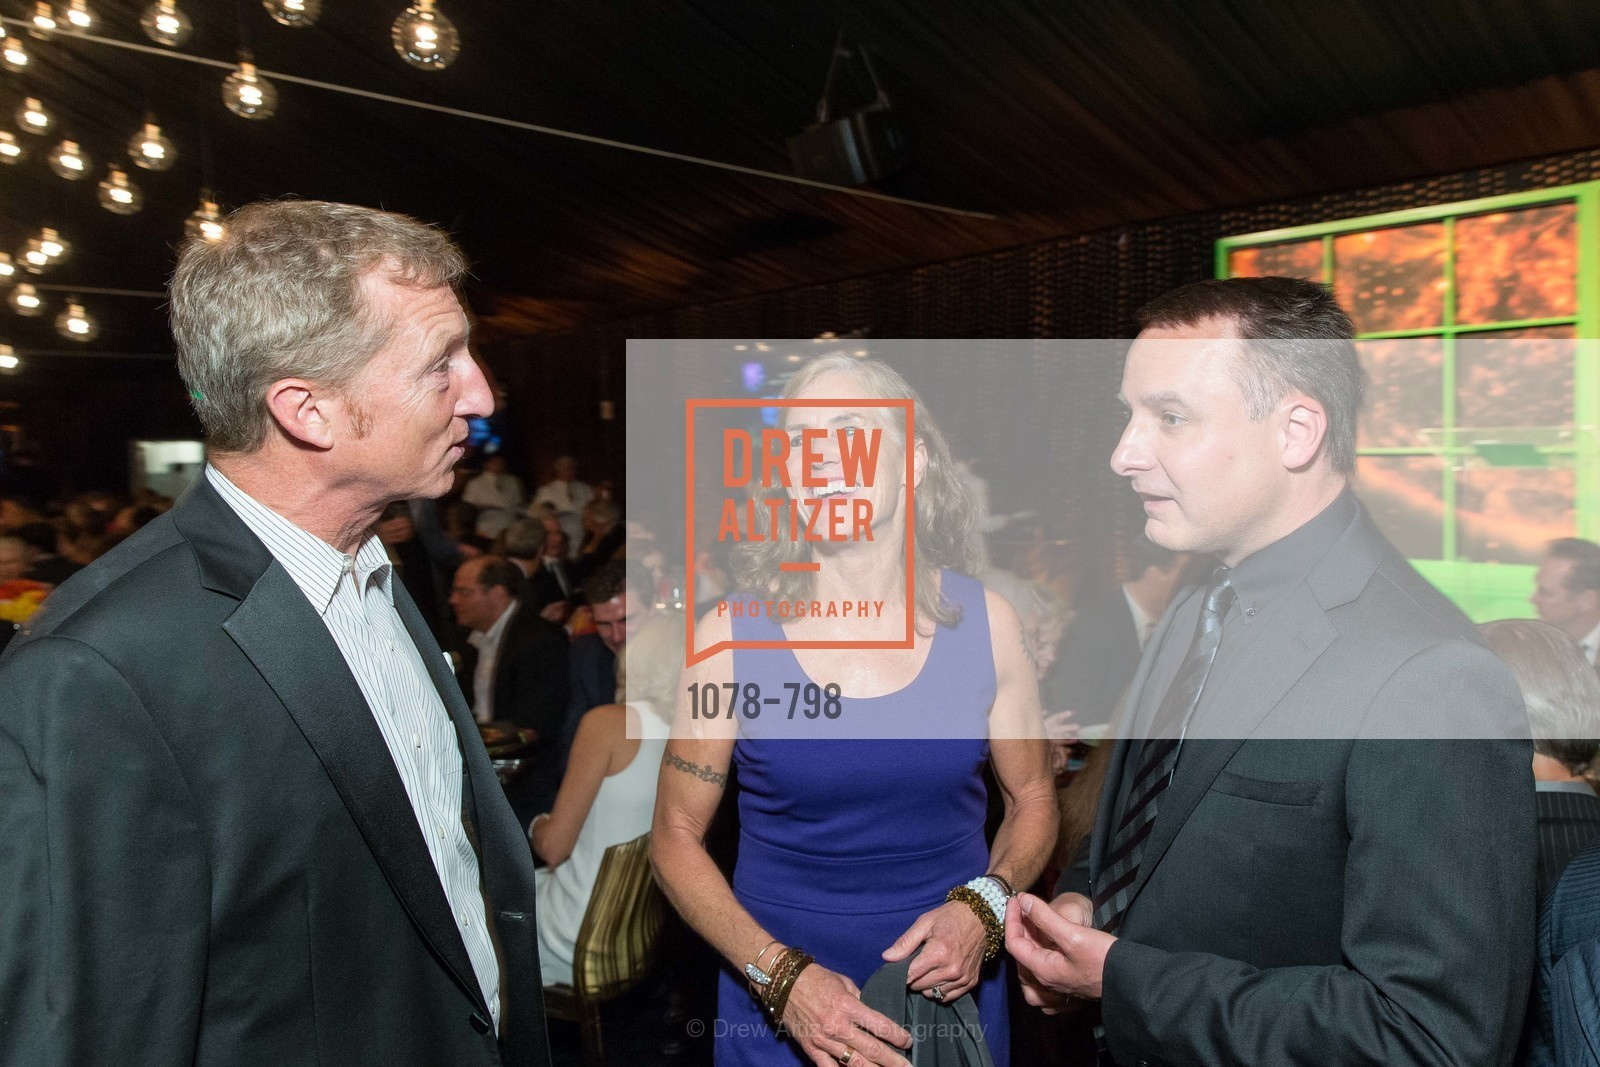 Tom Steyer, Kat Taylor, Jon Foley, CALIFORNIA ACADEMY OF SCIENCES - Big Bang Gala 2015, US, April 24th, 2015,Drew Altizer, Drew Altizer Photography, full-service agency, private events, San Francisco photographer, photographer california